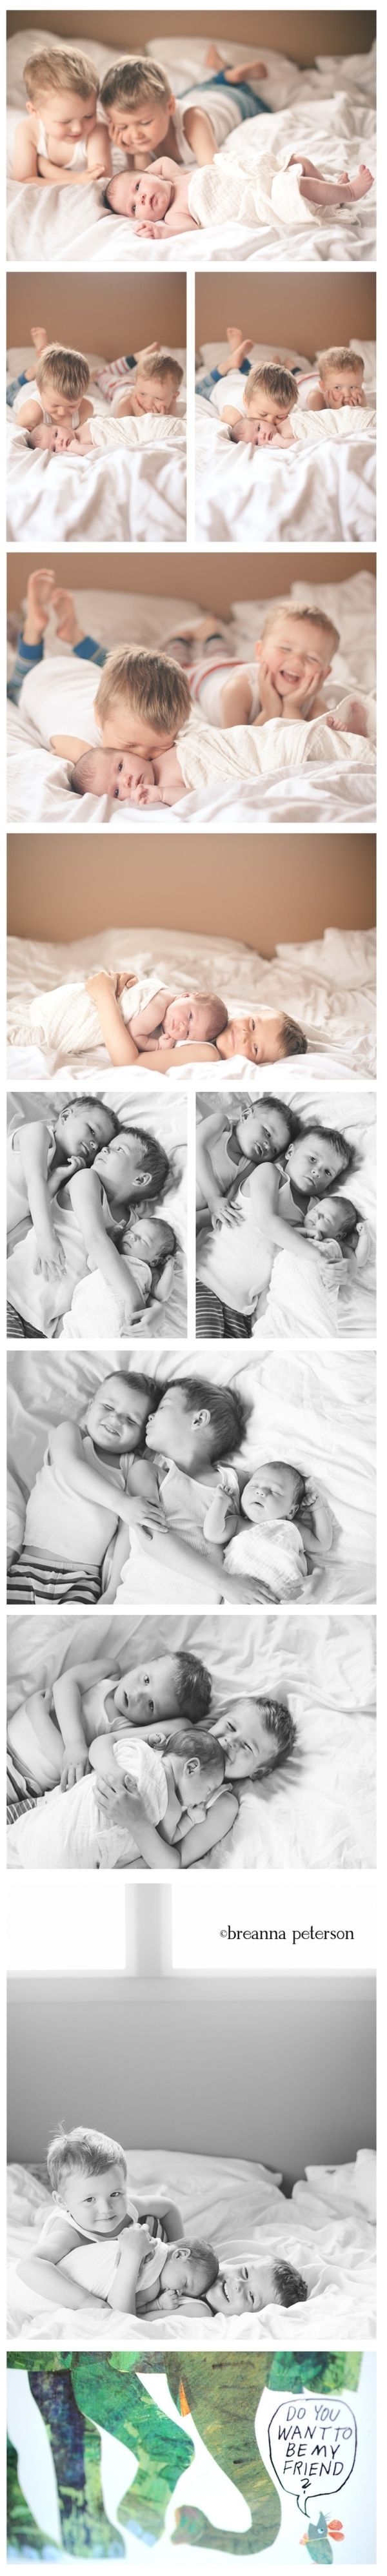 lifestyle newborn shoot with siblings by Maca